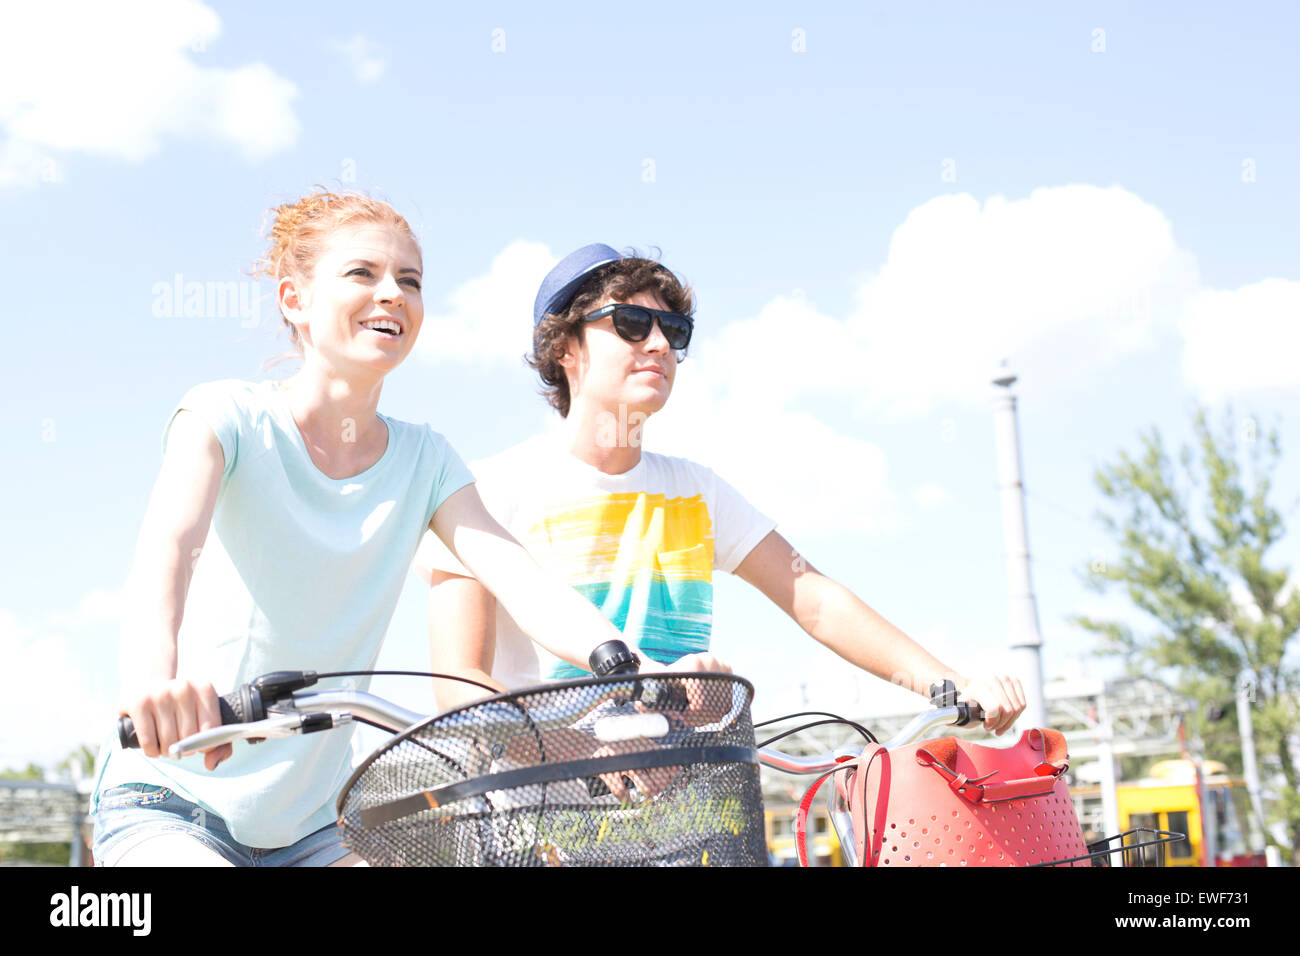 Smiling couple cycling against sky - Stock Image